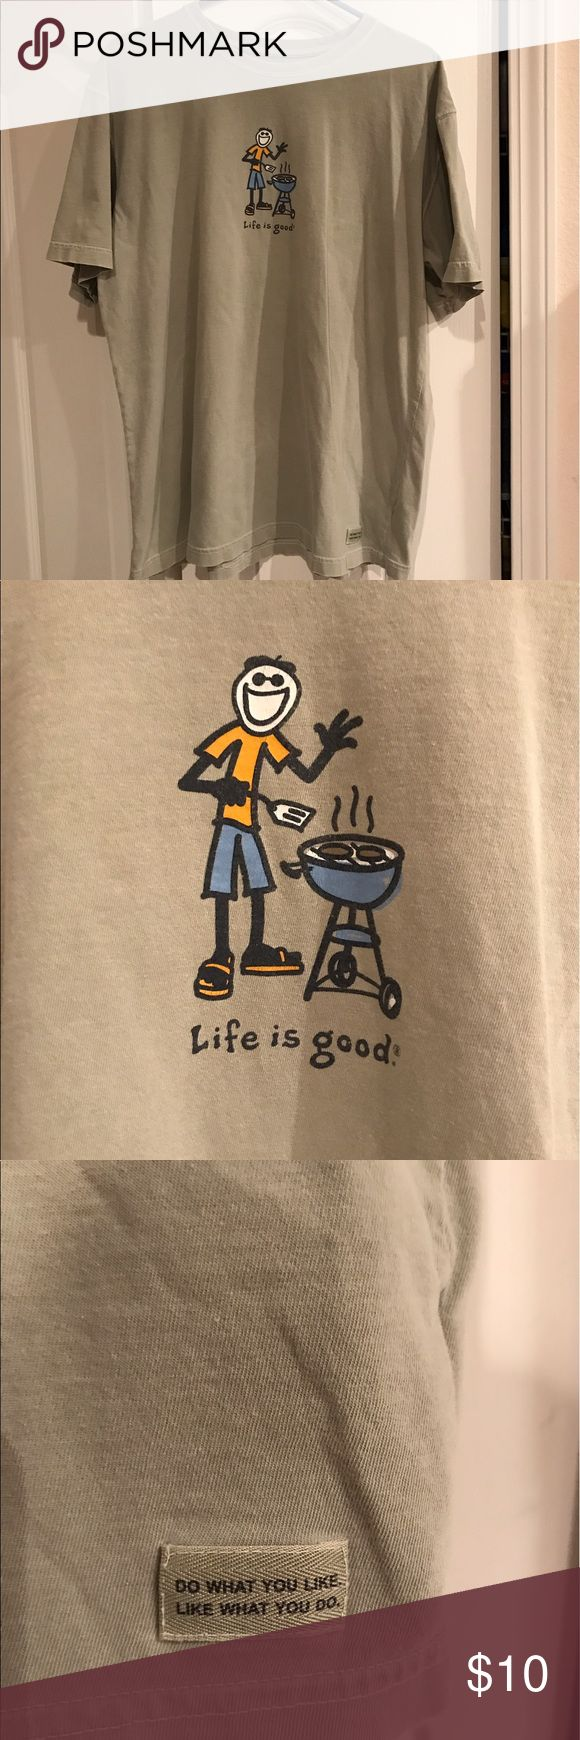 Men's LIFE IS GOOD BBQ tshirt size large The sexiest shirt in ALL of poshmark. LIFE is GOOD brand men's BBQ tshirt size large. Very good preworn condition no rips tears or holes but captures the very essence of suburban sexy. Life Is Good Shirts Tees - Short Sleeve